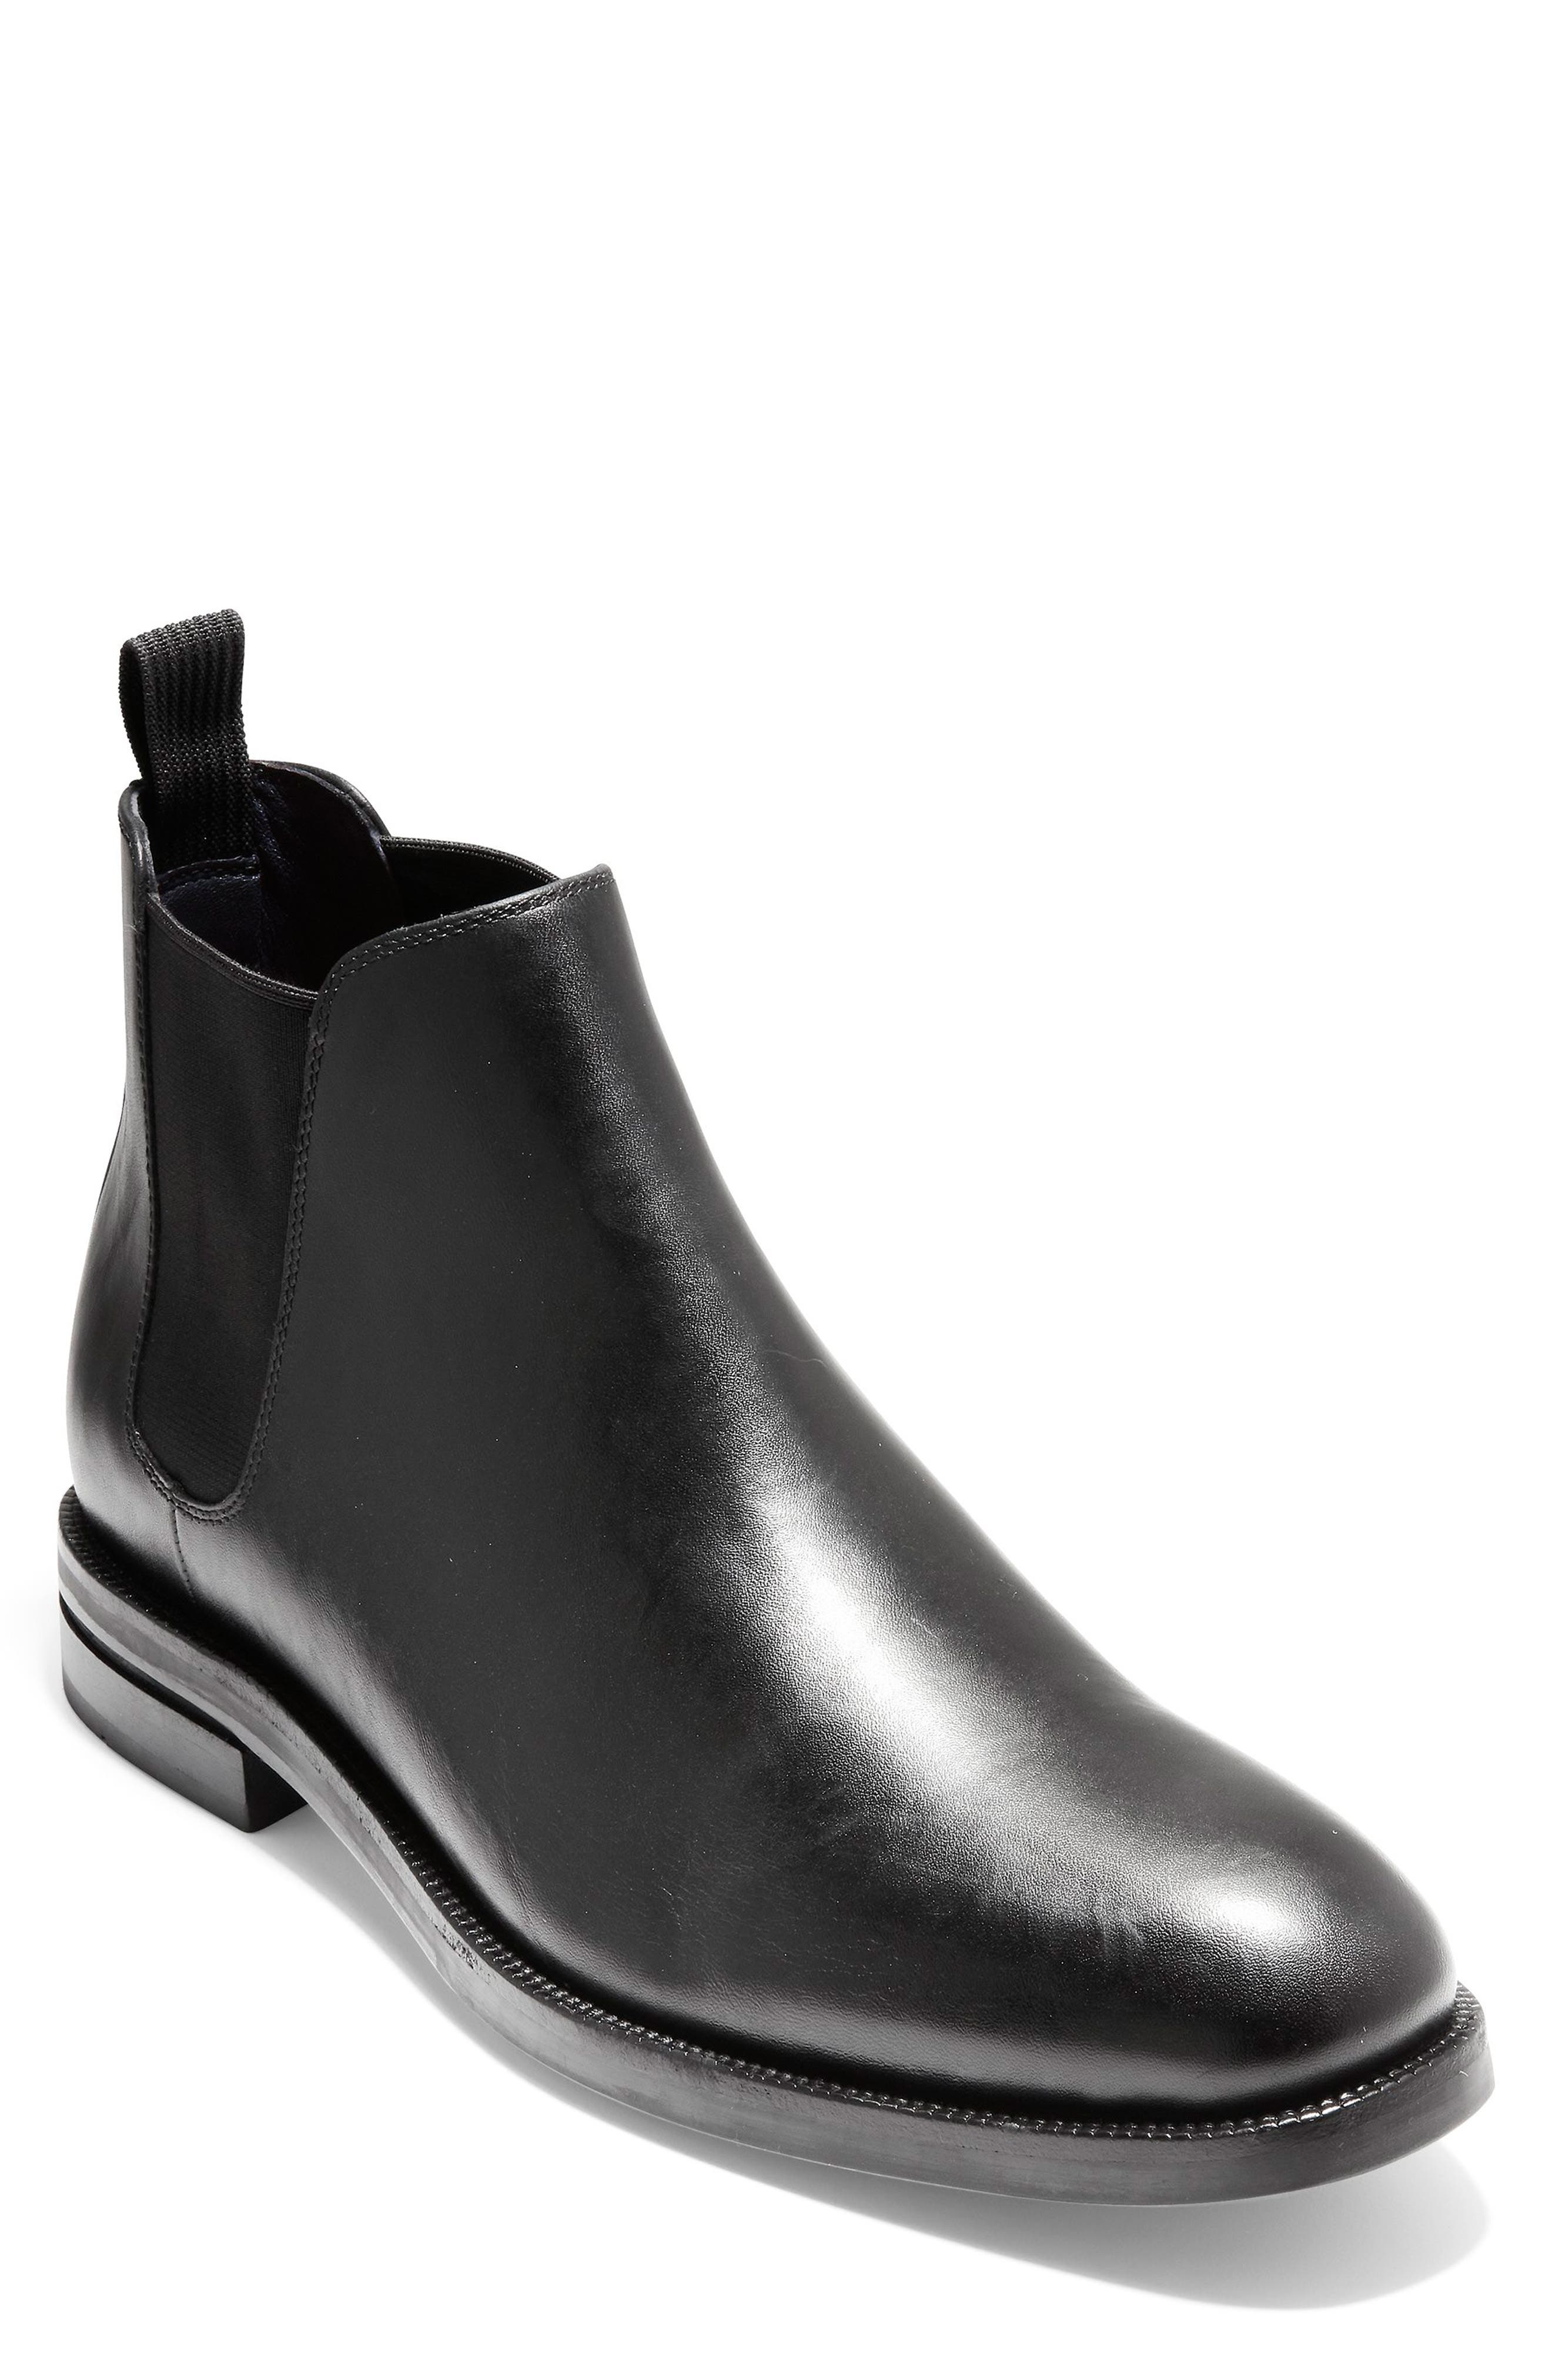 Wakefield Grand Chelsea Boot,                         Main,                         color, BLACK LEATHER